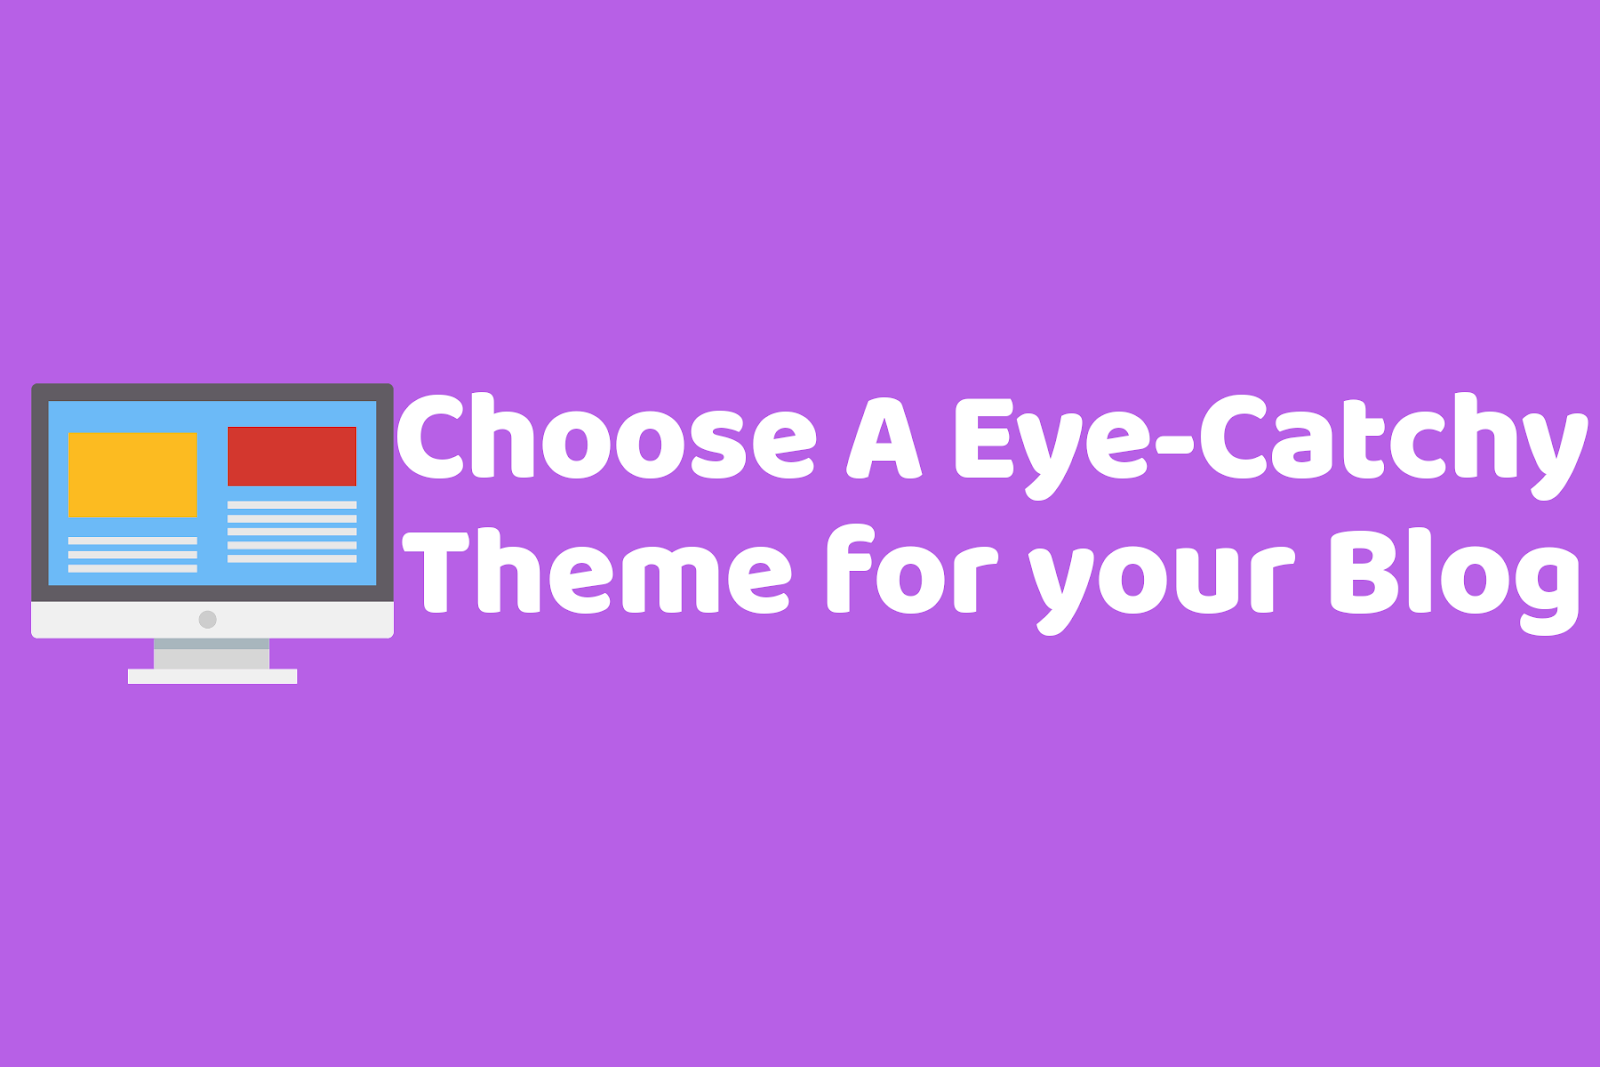 Choose eye catchy theme to start a blog